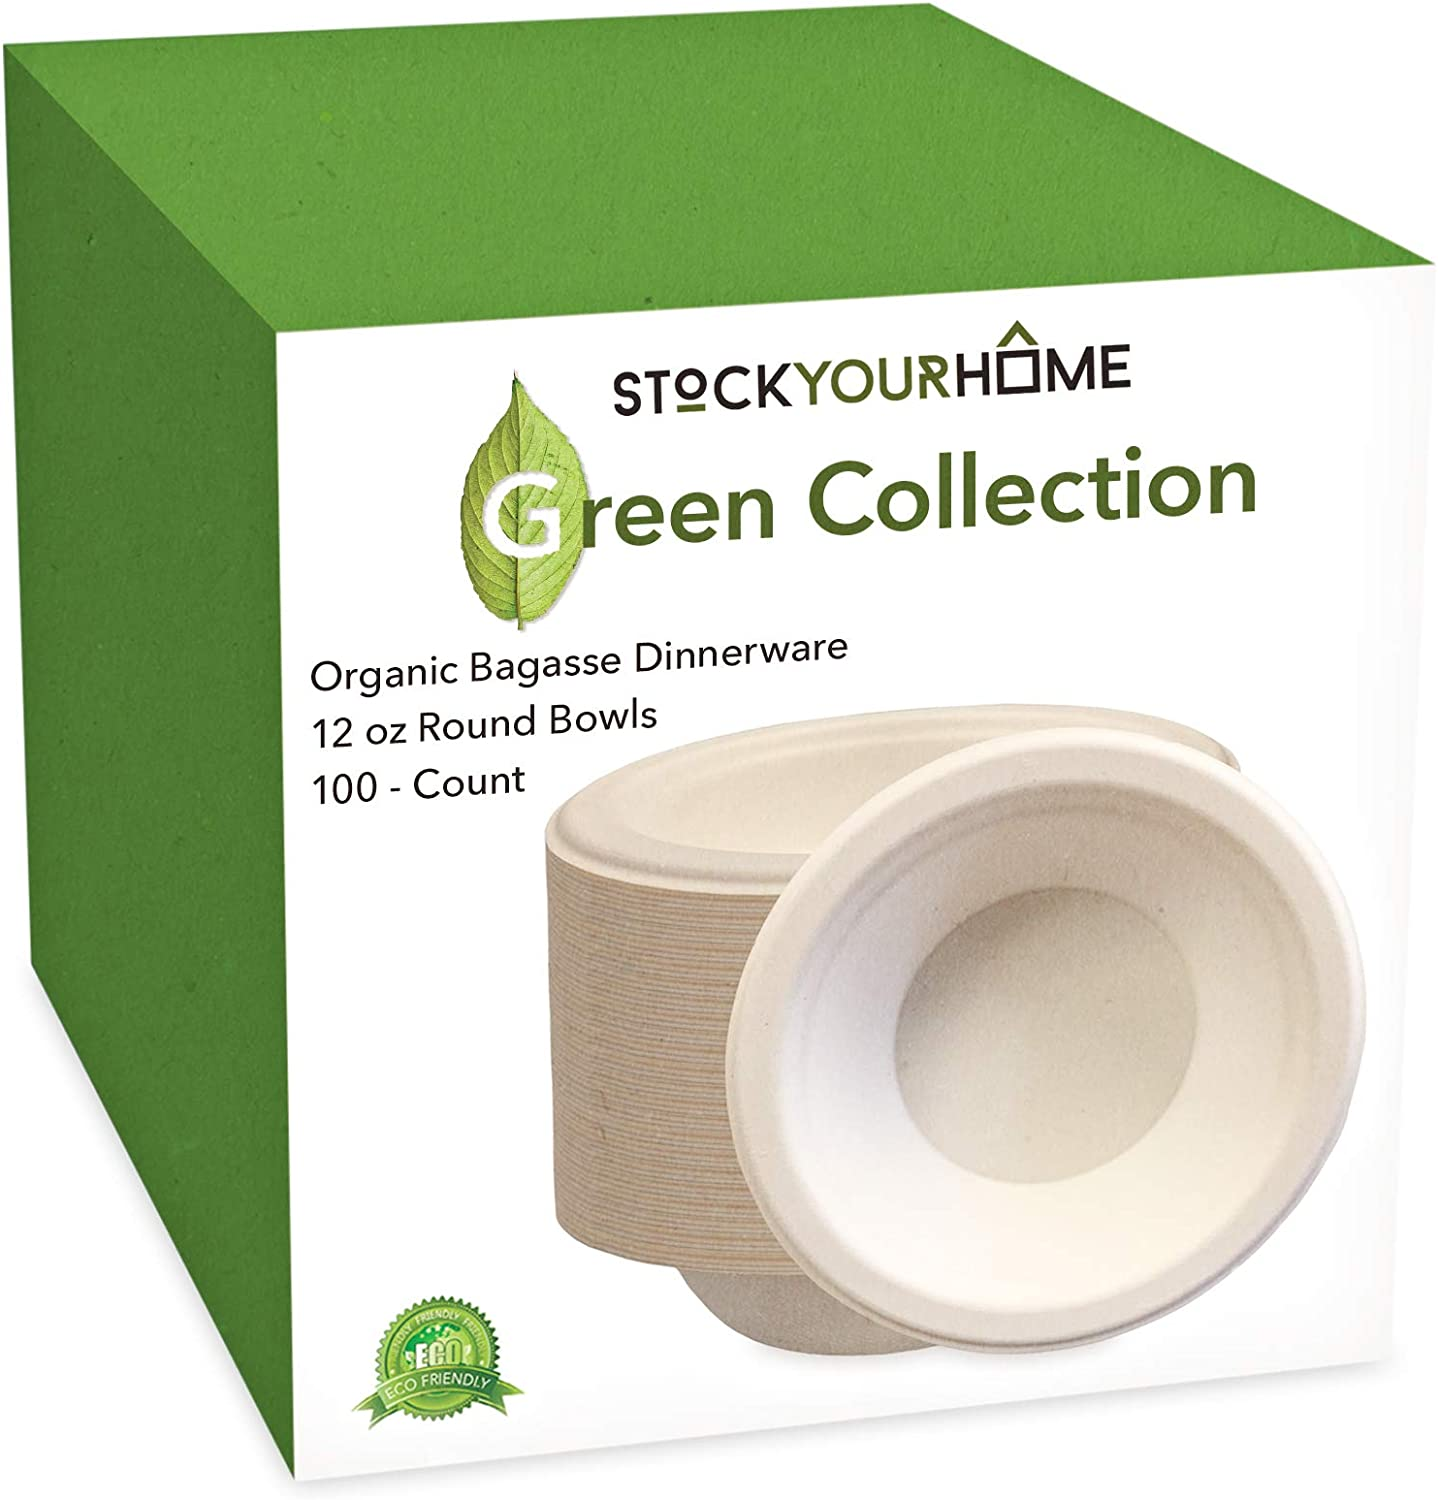 Compostable Bagasse Bowls - Eco Friendly Dinnerware - Biodegradable and Recyclable, 100 Pack, 12 Oz